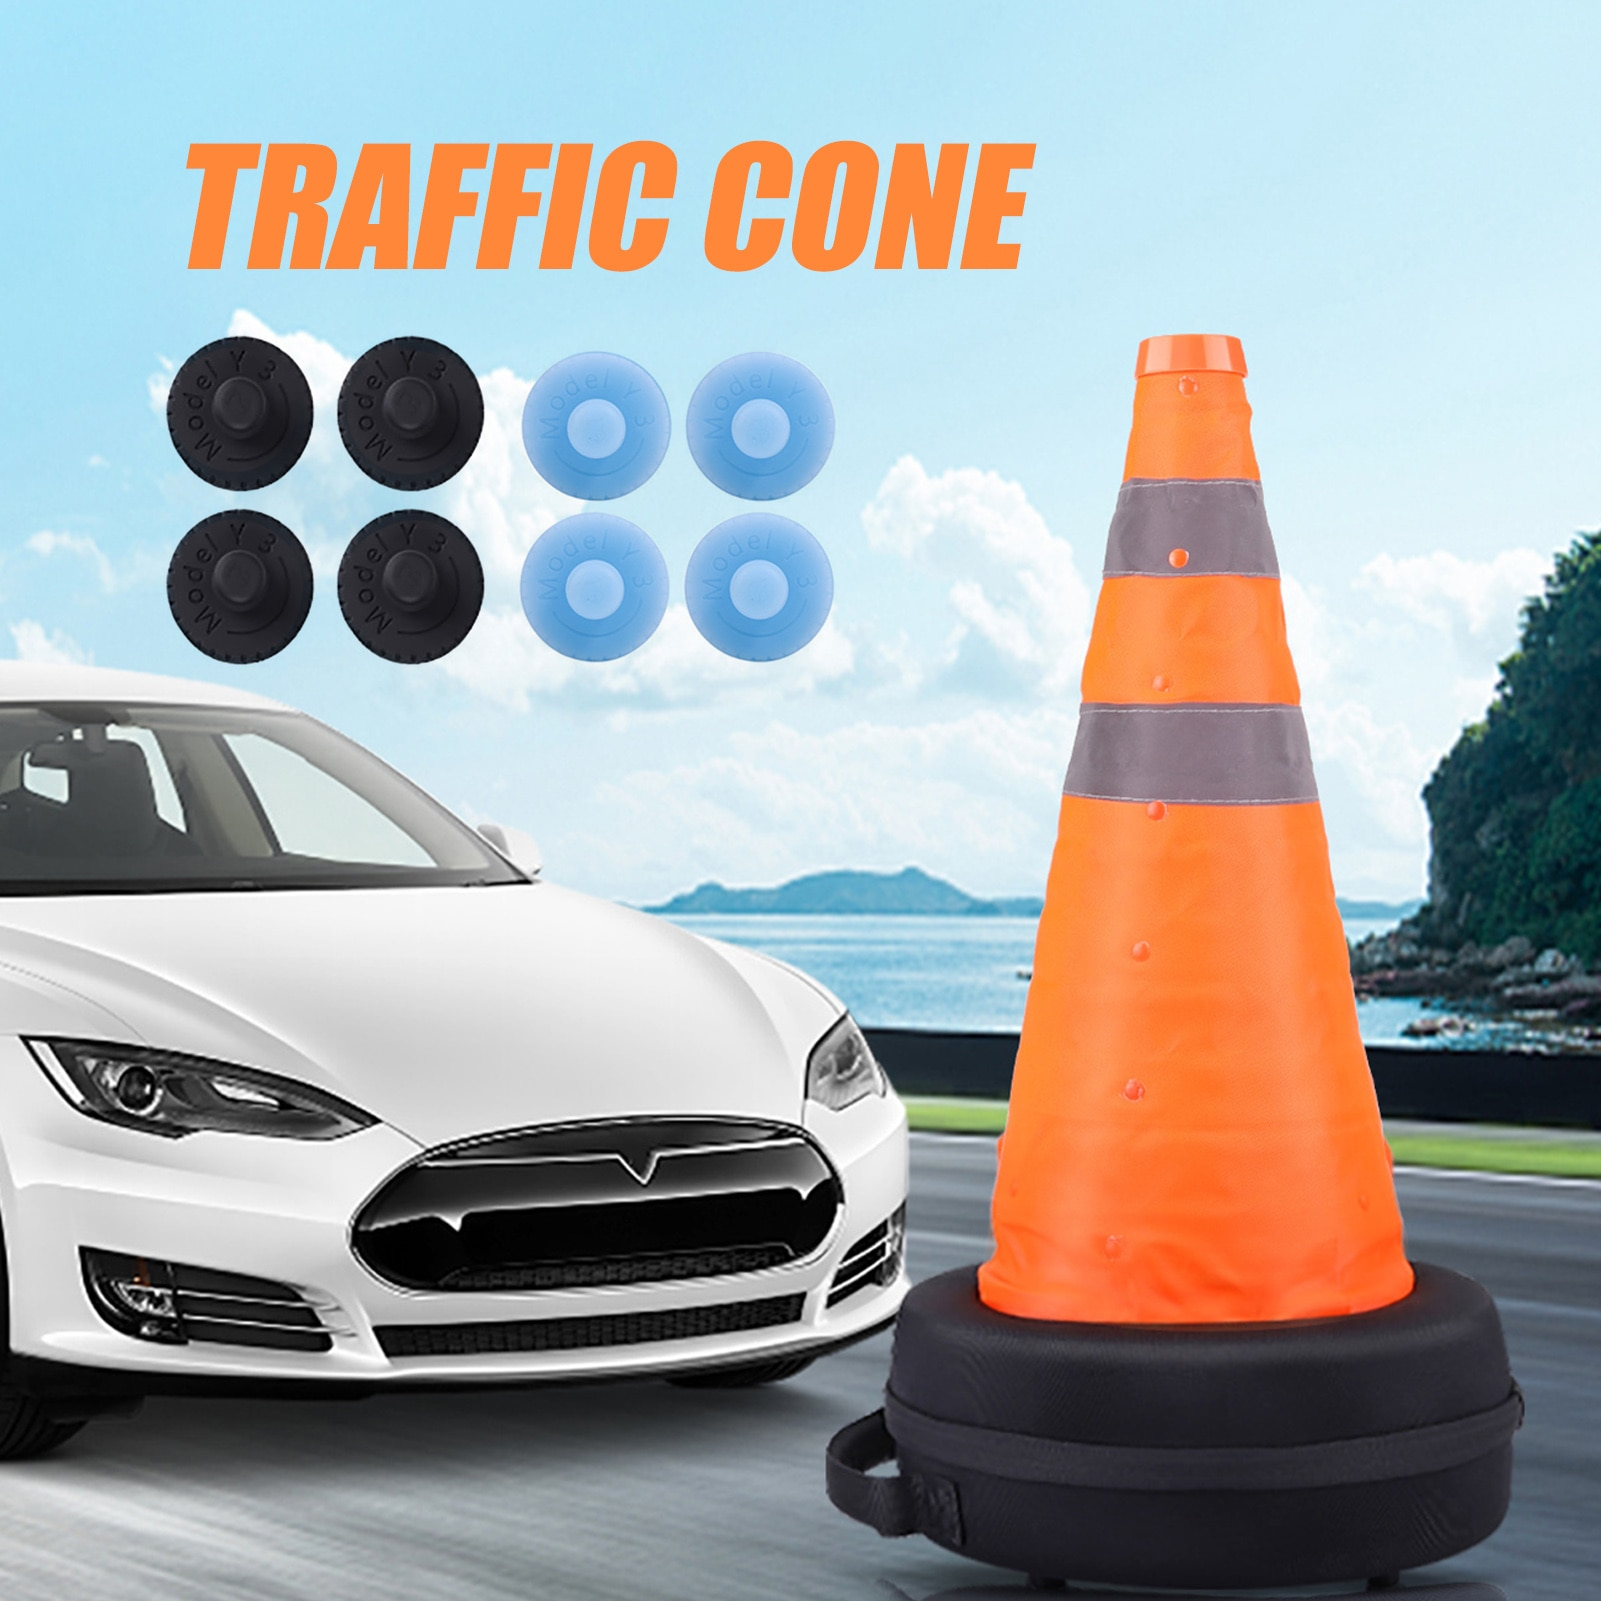 Collapsible Foldable Traffic Cones Too Kit Parking Barriers Car Safety Warning Cone Ice Cream Cone Reflective Road Cones Benefit